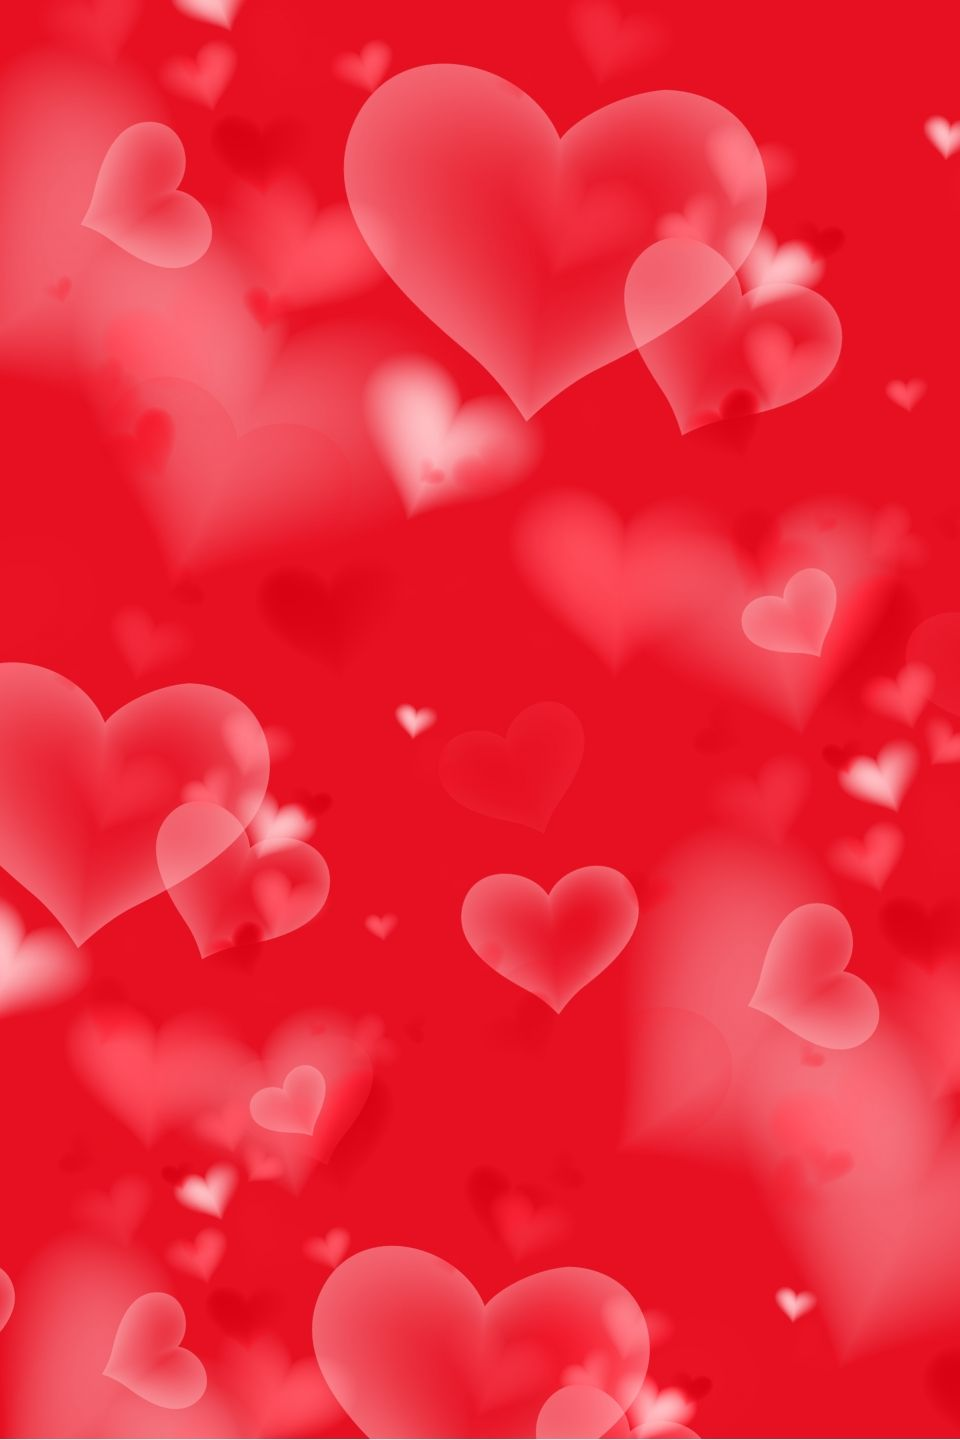 Romantic Valentine S Day Red Heart Shaped Pattern H5 Background Material Valentine Background Photoshoot Backdrops Picture Backdrops